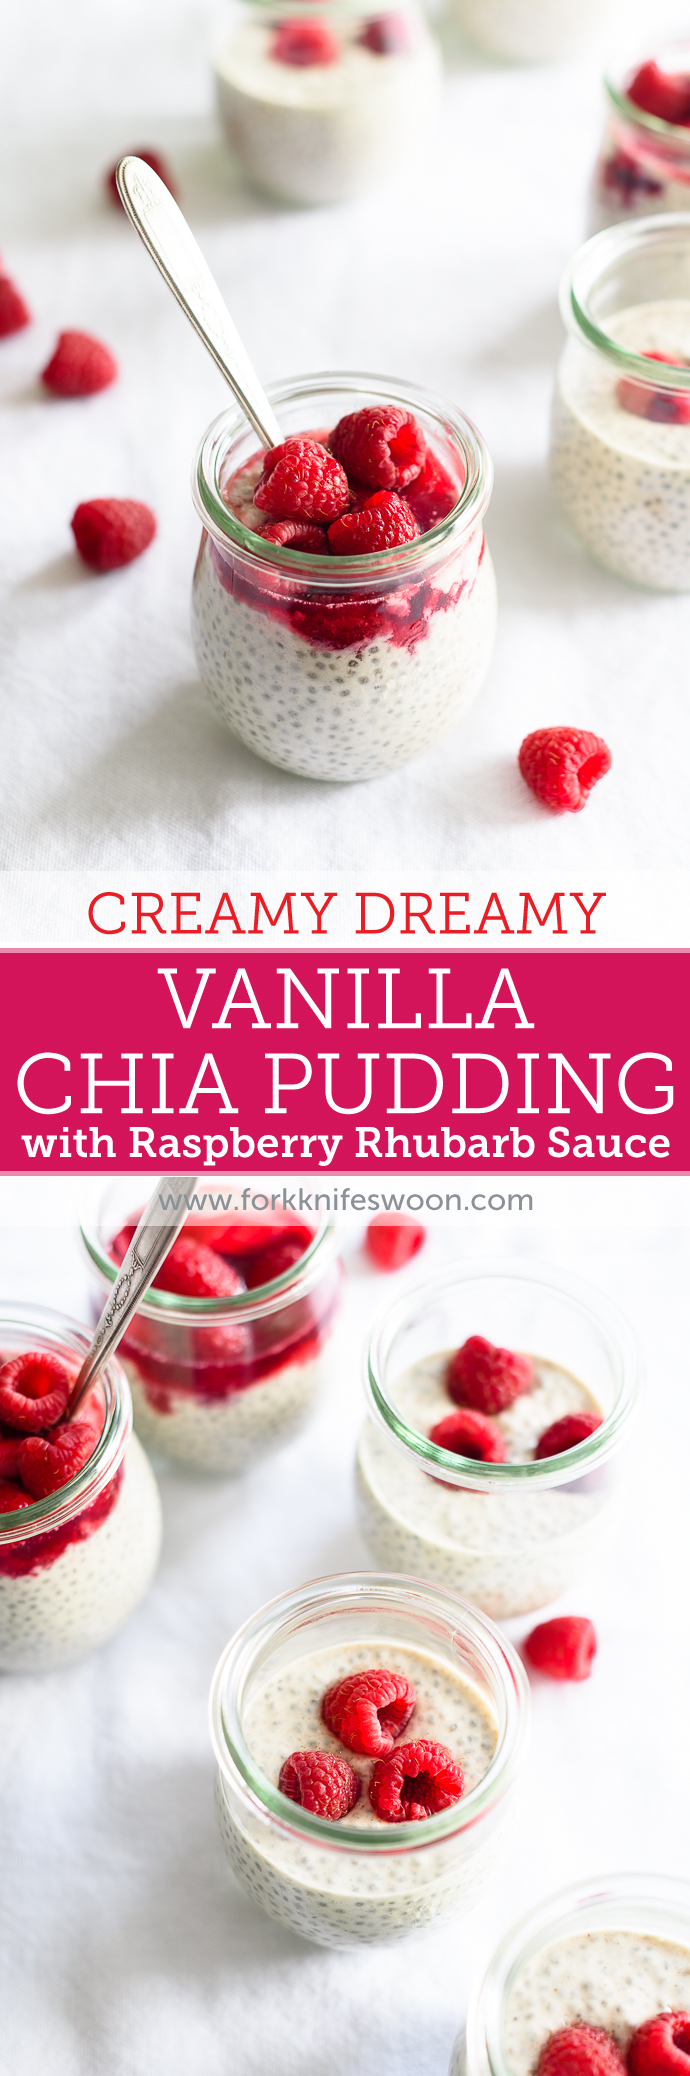 Creamy Vanilla Chia Pudding with Raspberry Rhubarb Compote | Fork Knife Swoon @forkknifeswoon